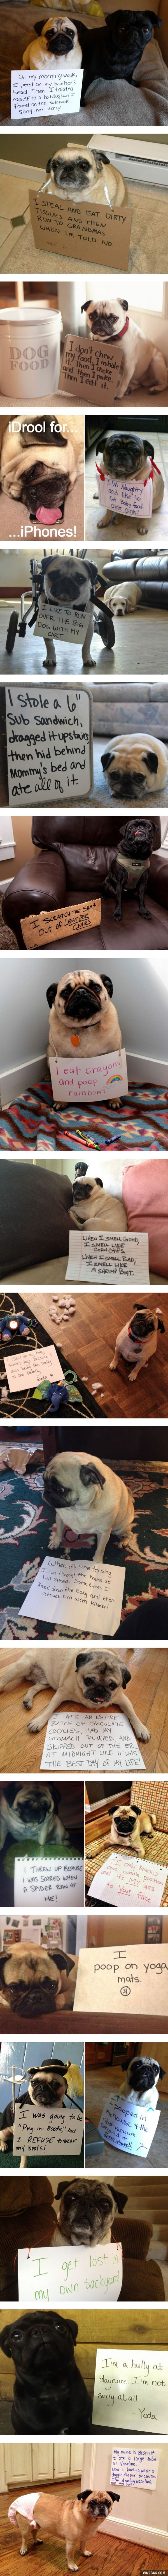 dog shaming - pug compilation